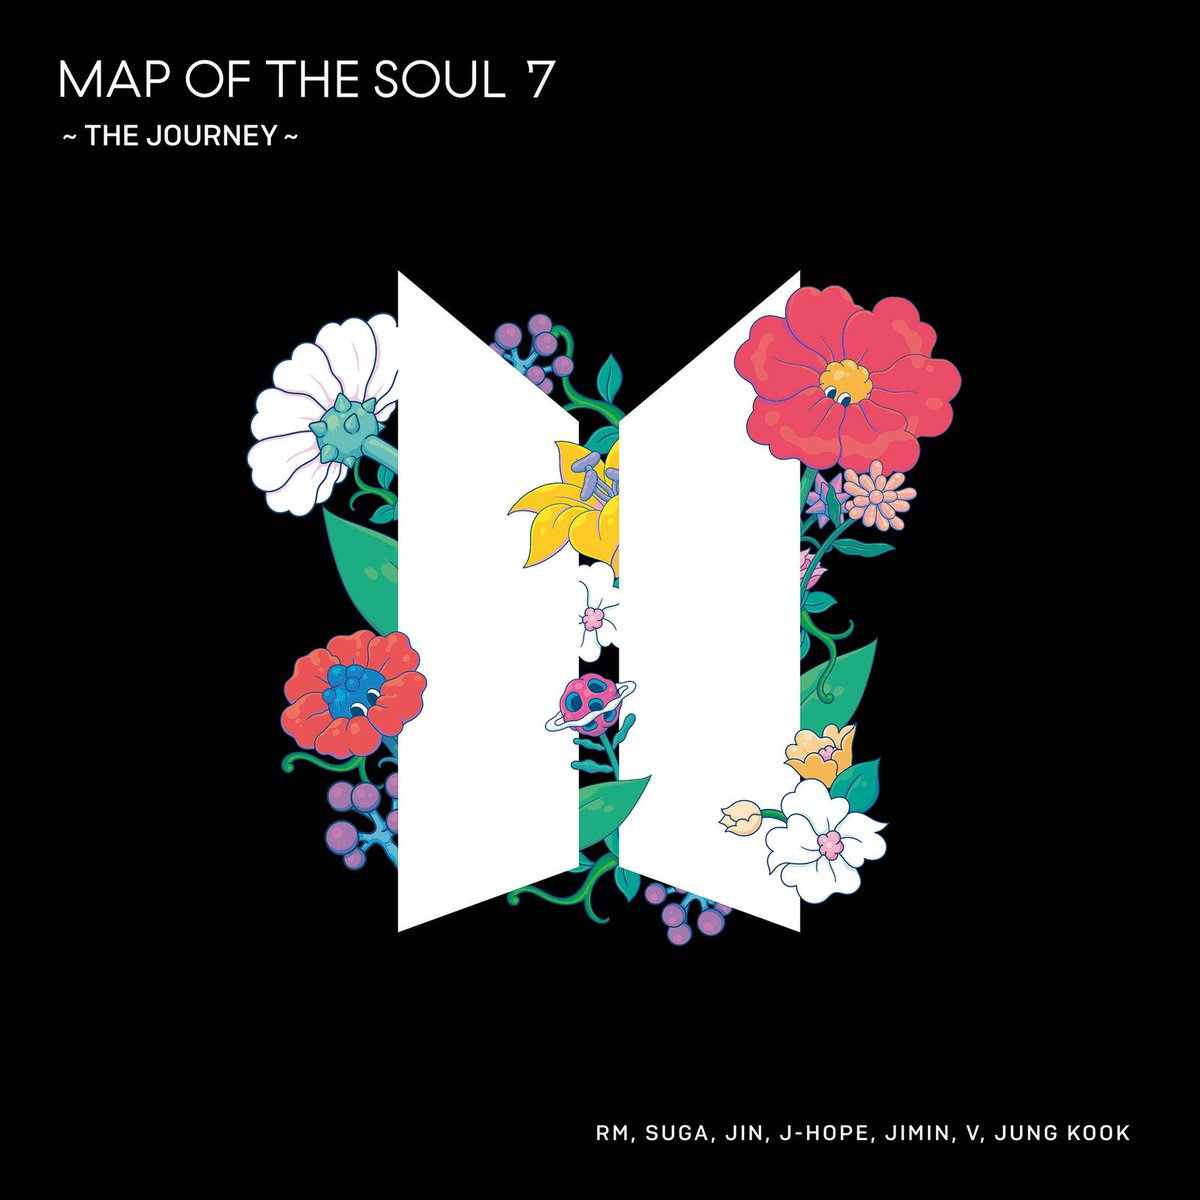 #MapOfTheSoul7TheJourney